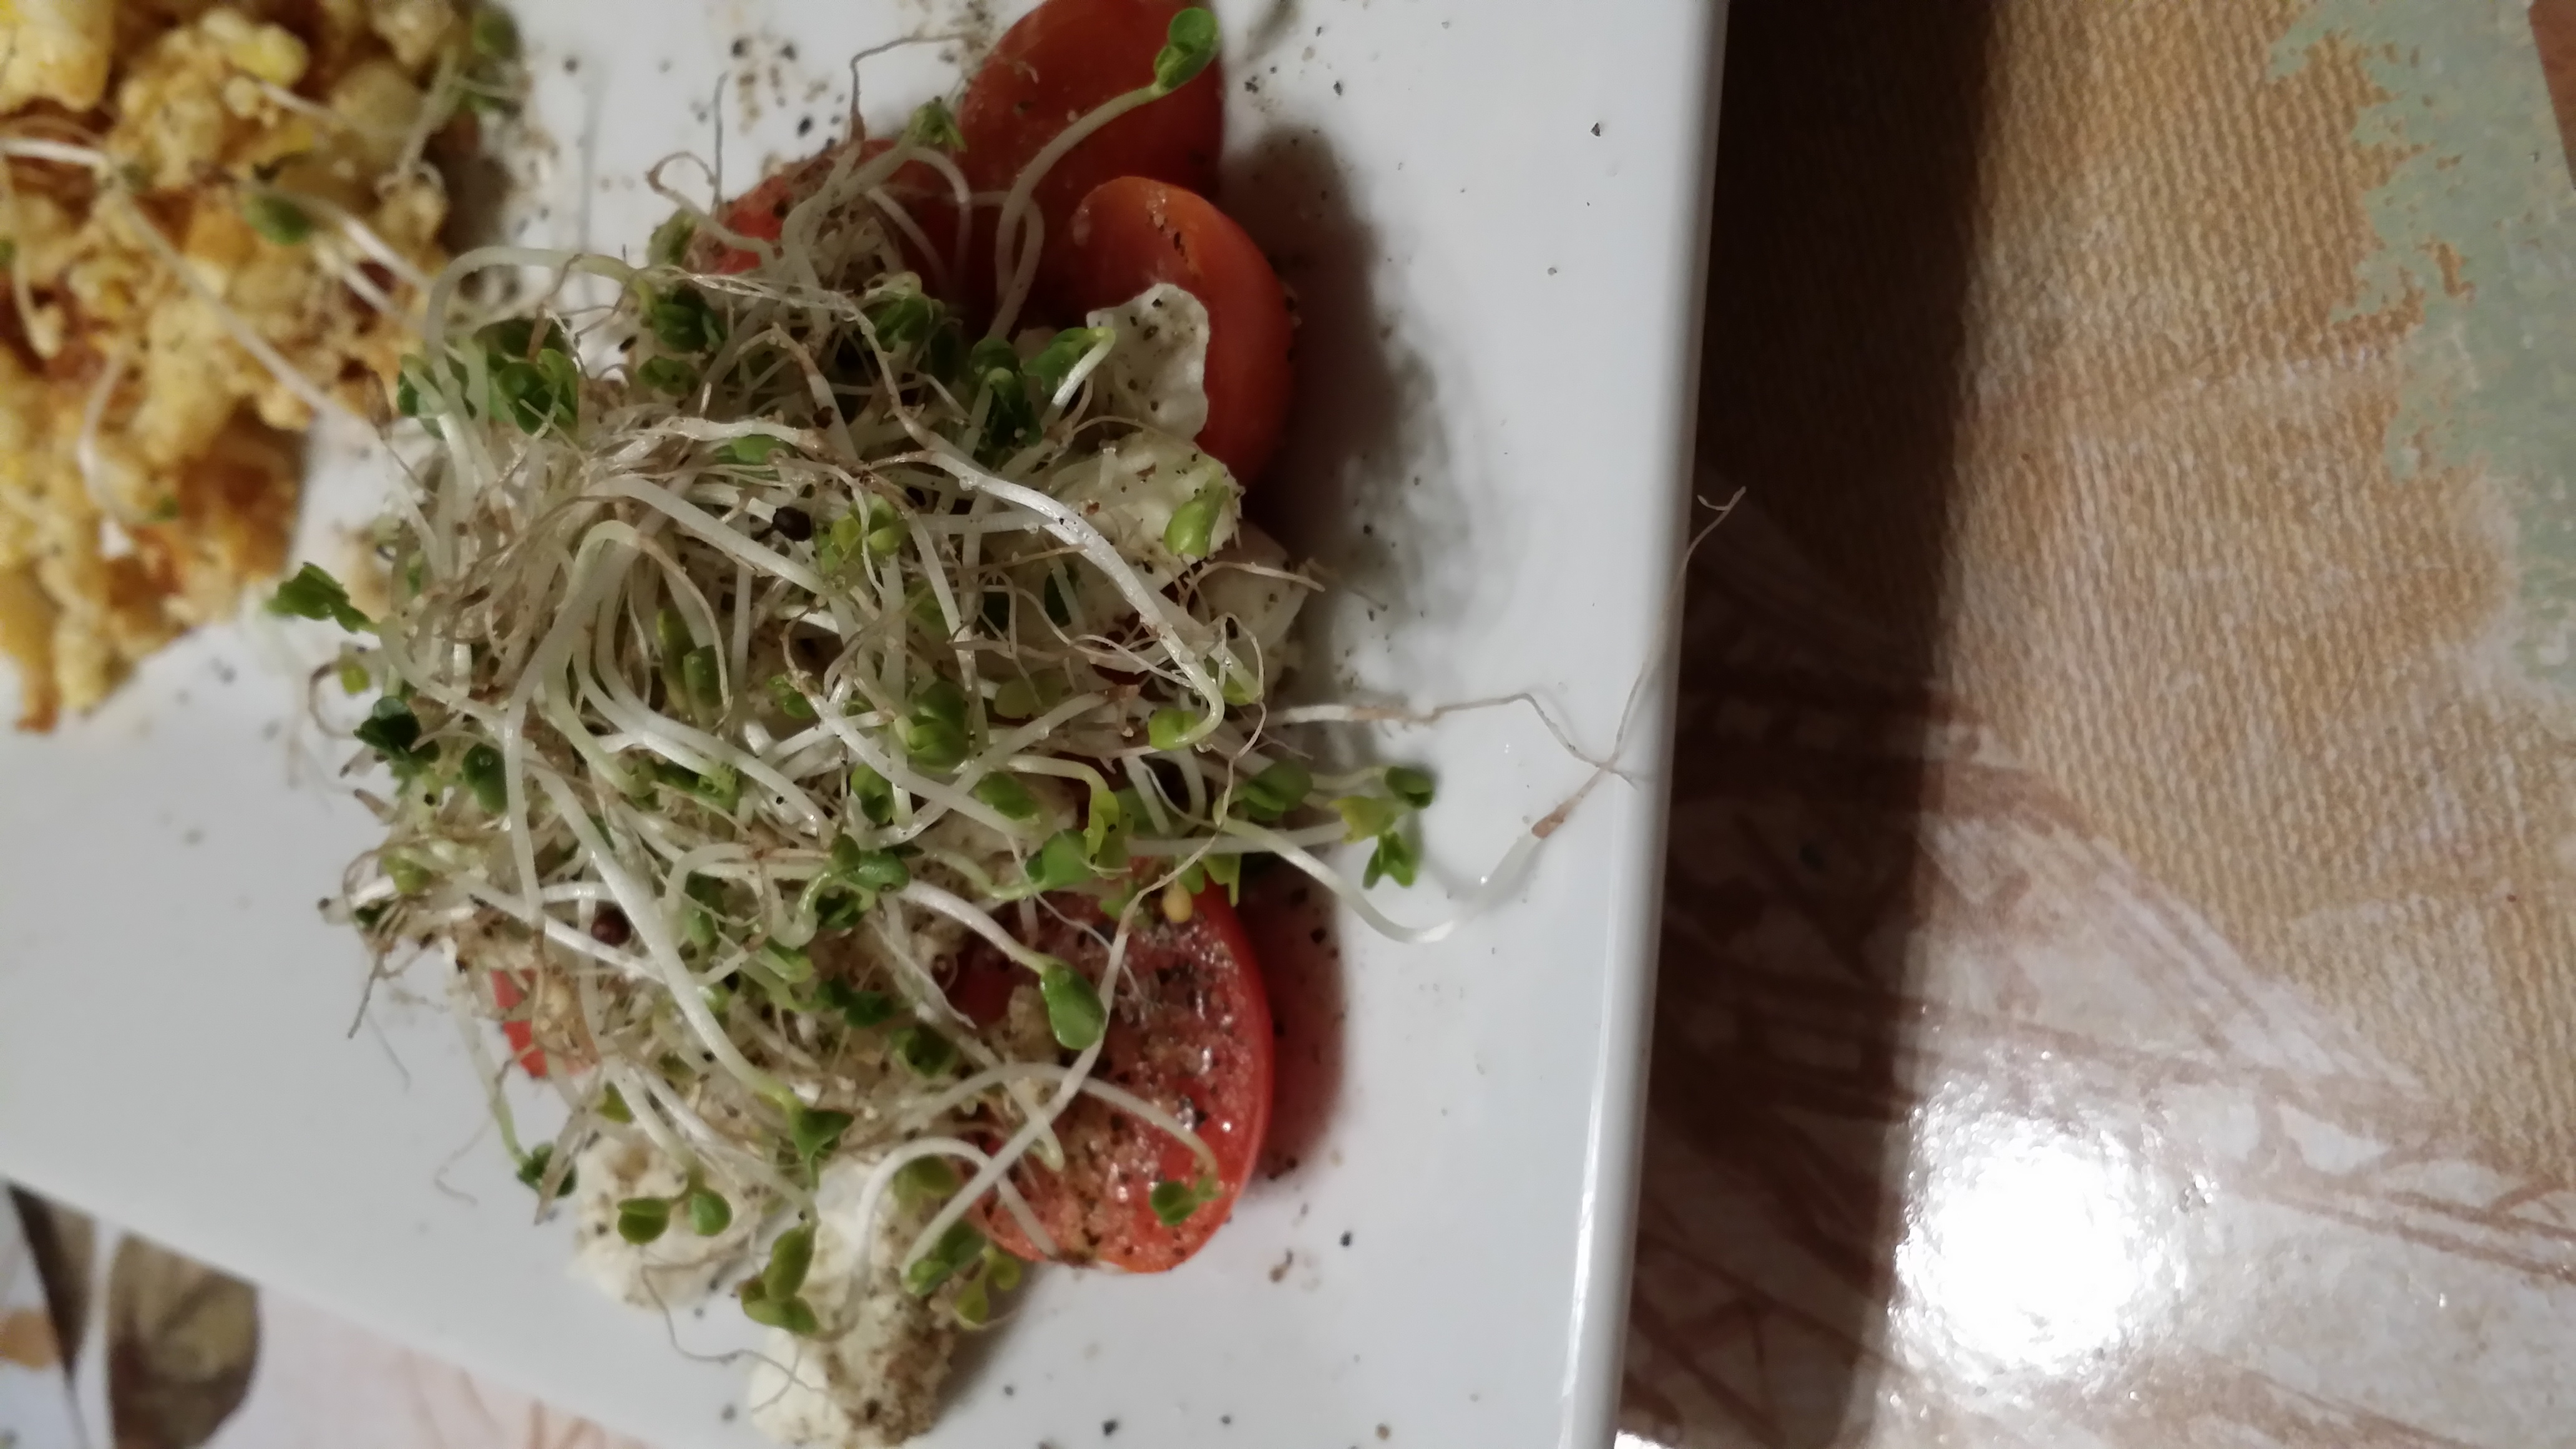 slice tomatoes put feta cheese, & broccoli sprouts on top. drizzle with olive oil & your done